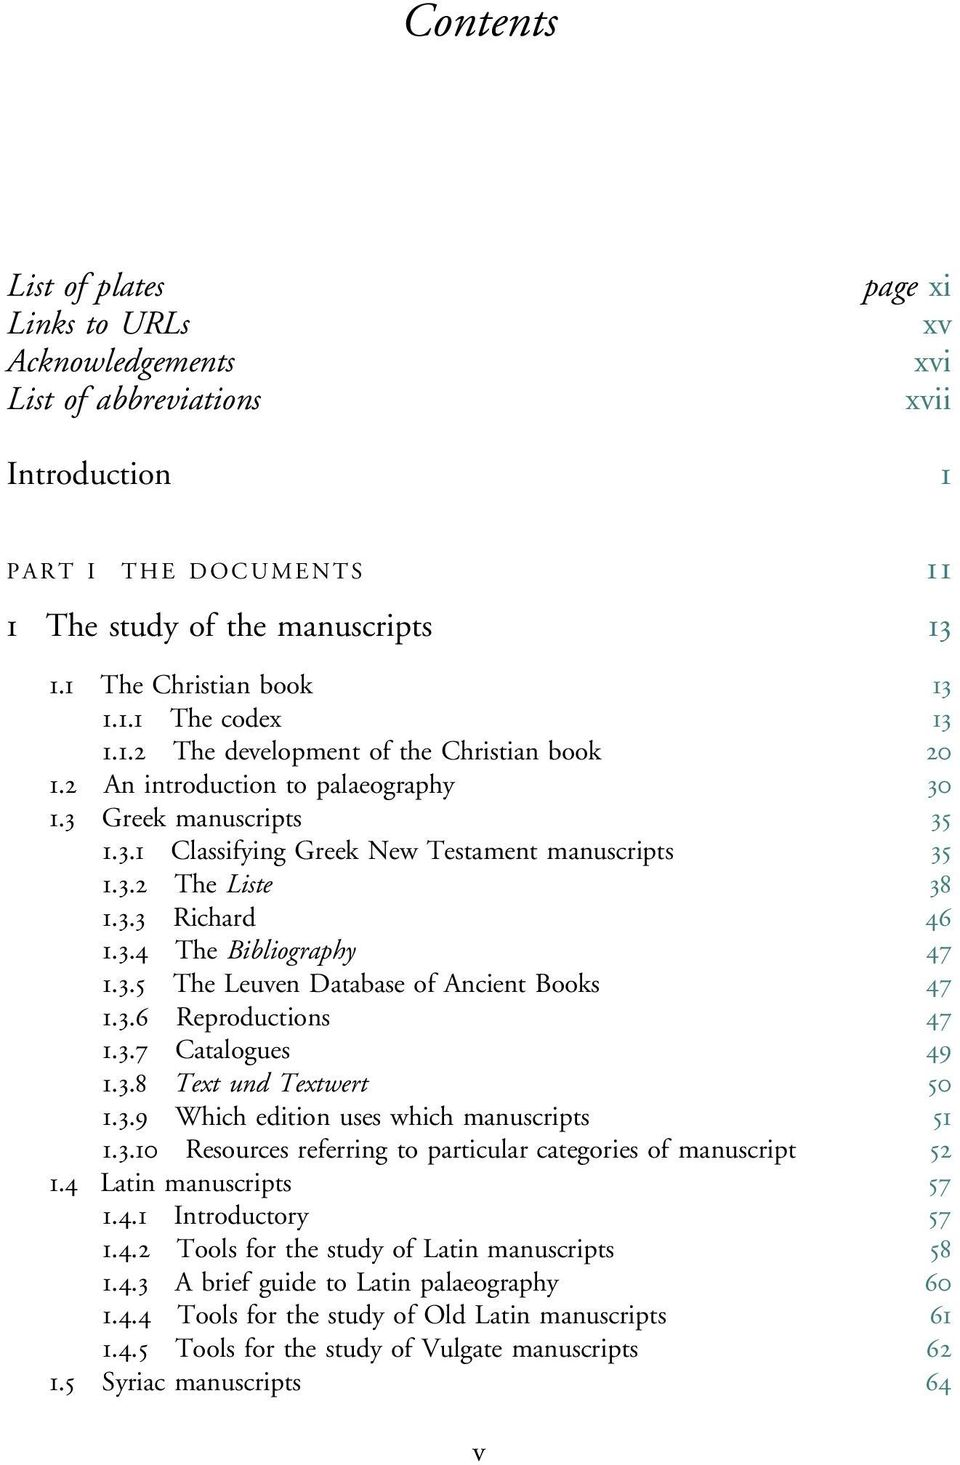 3.4 The Bibliography 47 1.3.5 The Leuven Database of Ancient Books 47 1.3.6 Reproductions 47 1.3.7 Catalogues 49 1.3.8 Text und Textwert 50 1.3.9 Which edition uses which manuscripts 51 1.3.10 Resources referring to particular categories of manuscript 52 1.